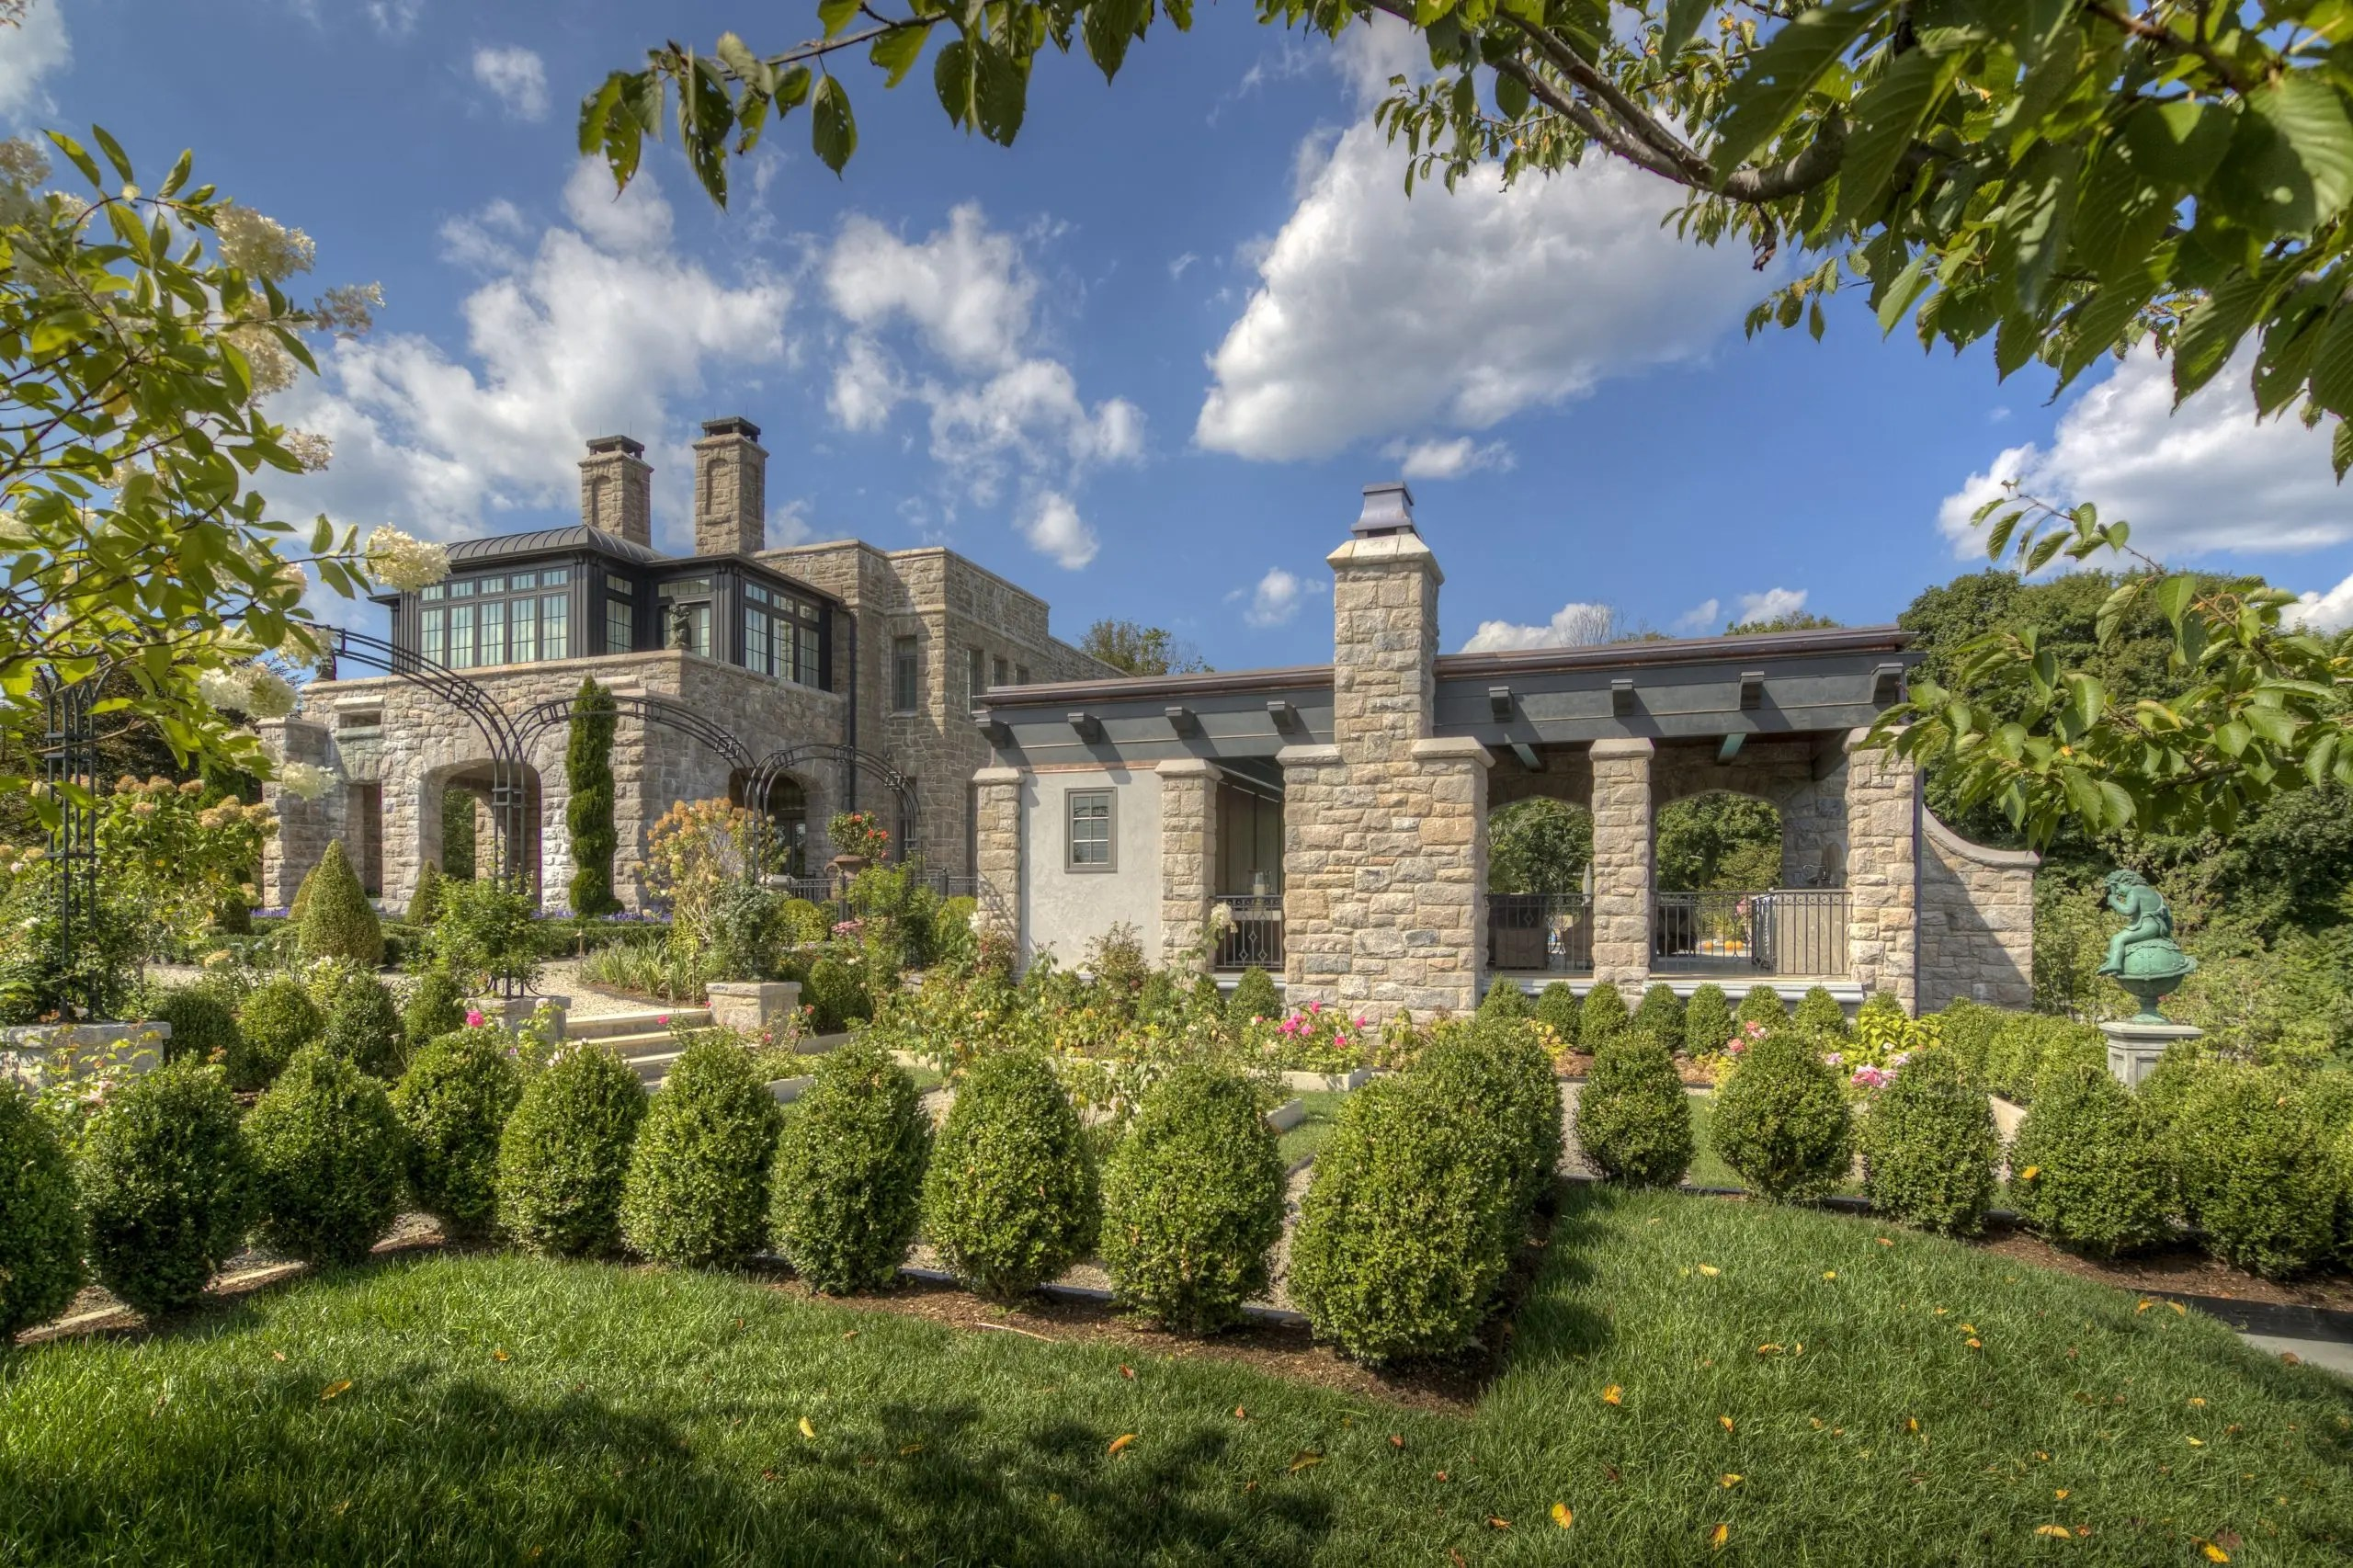 Castle Pool House 1 - Armonk, NY - Murphy Brothers Contracting Project